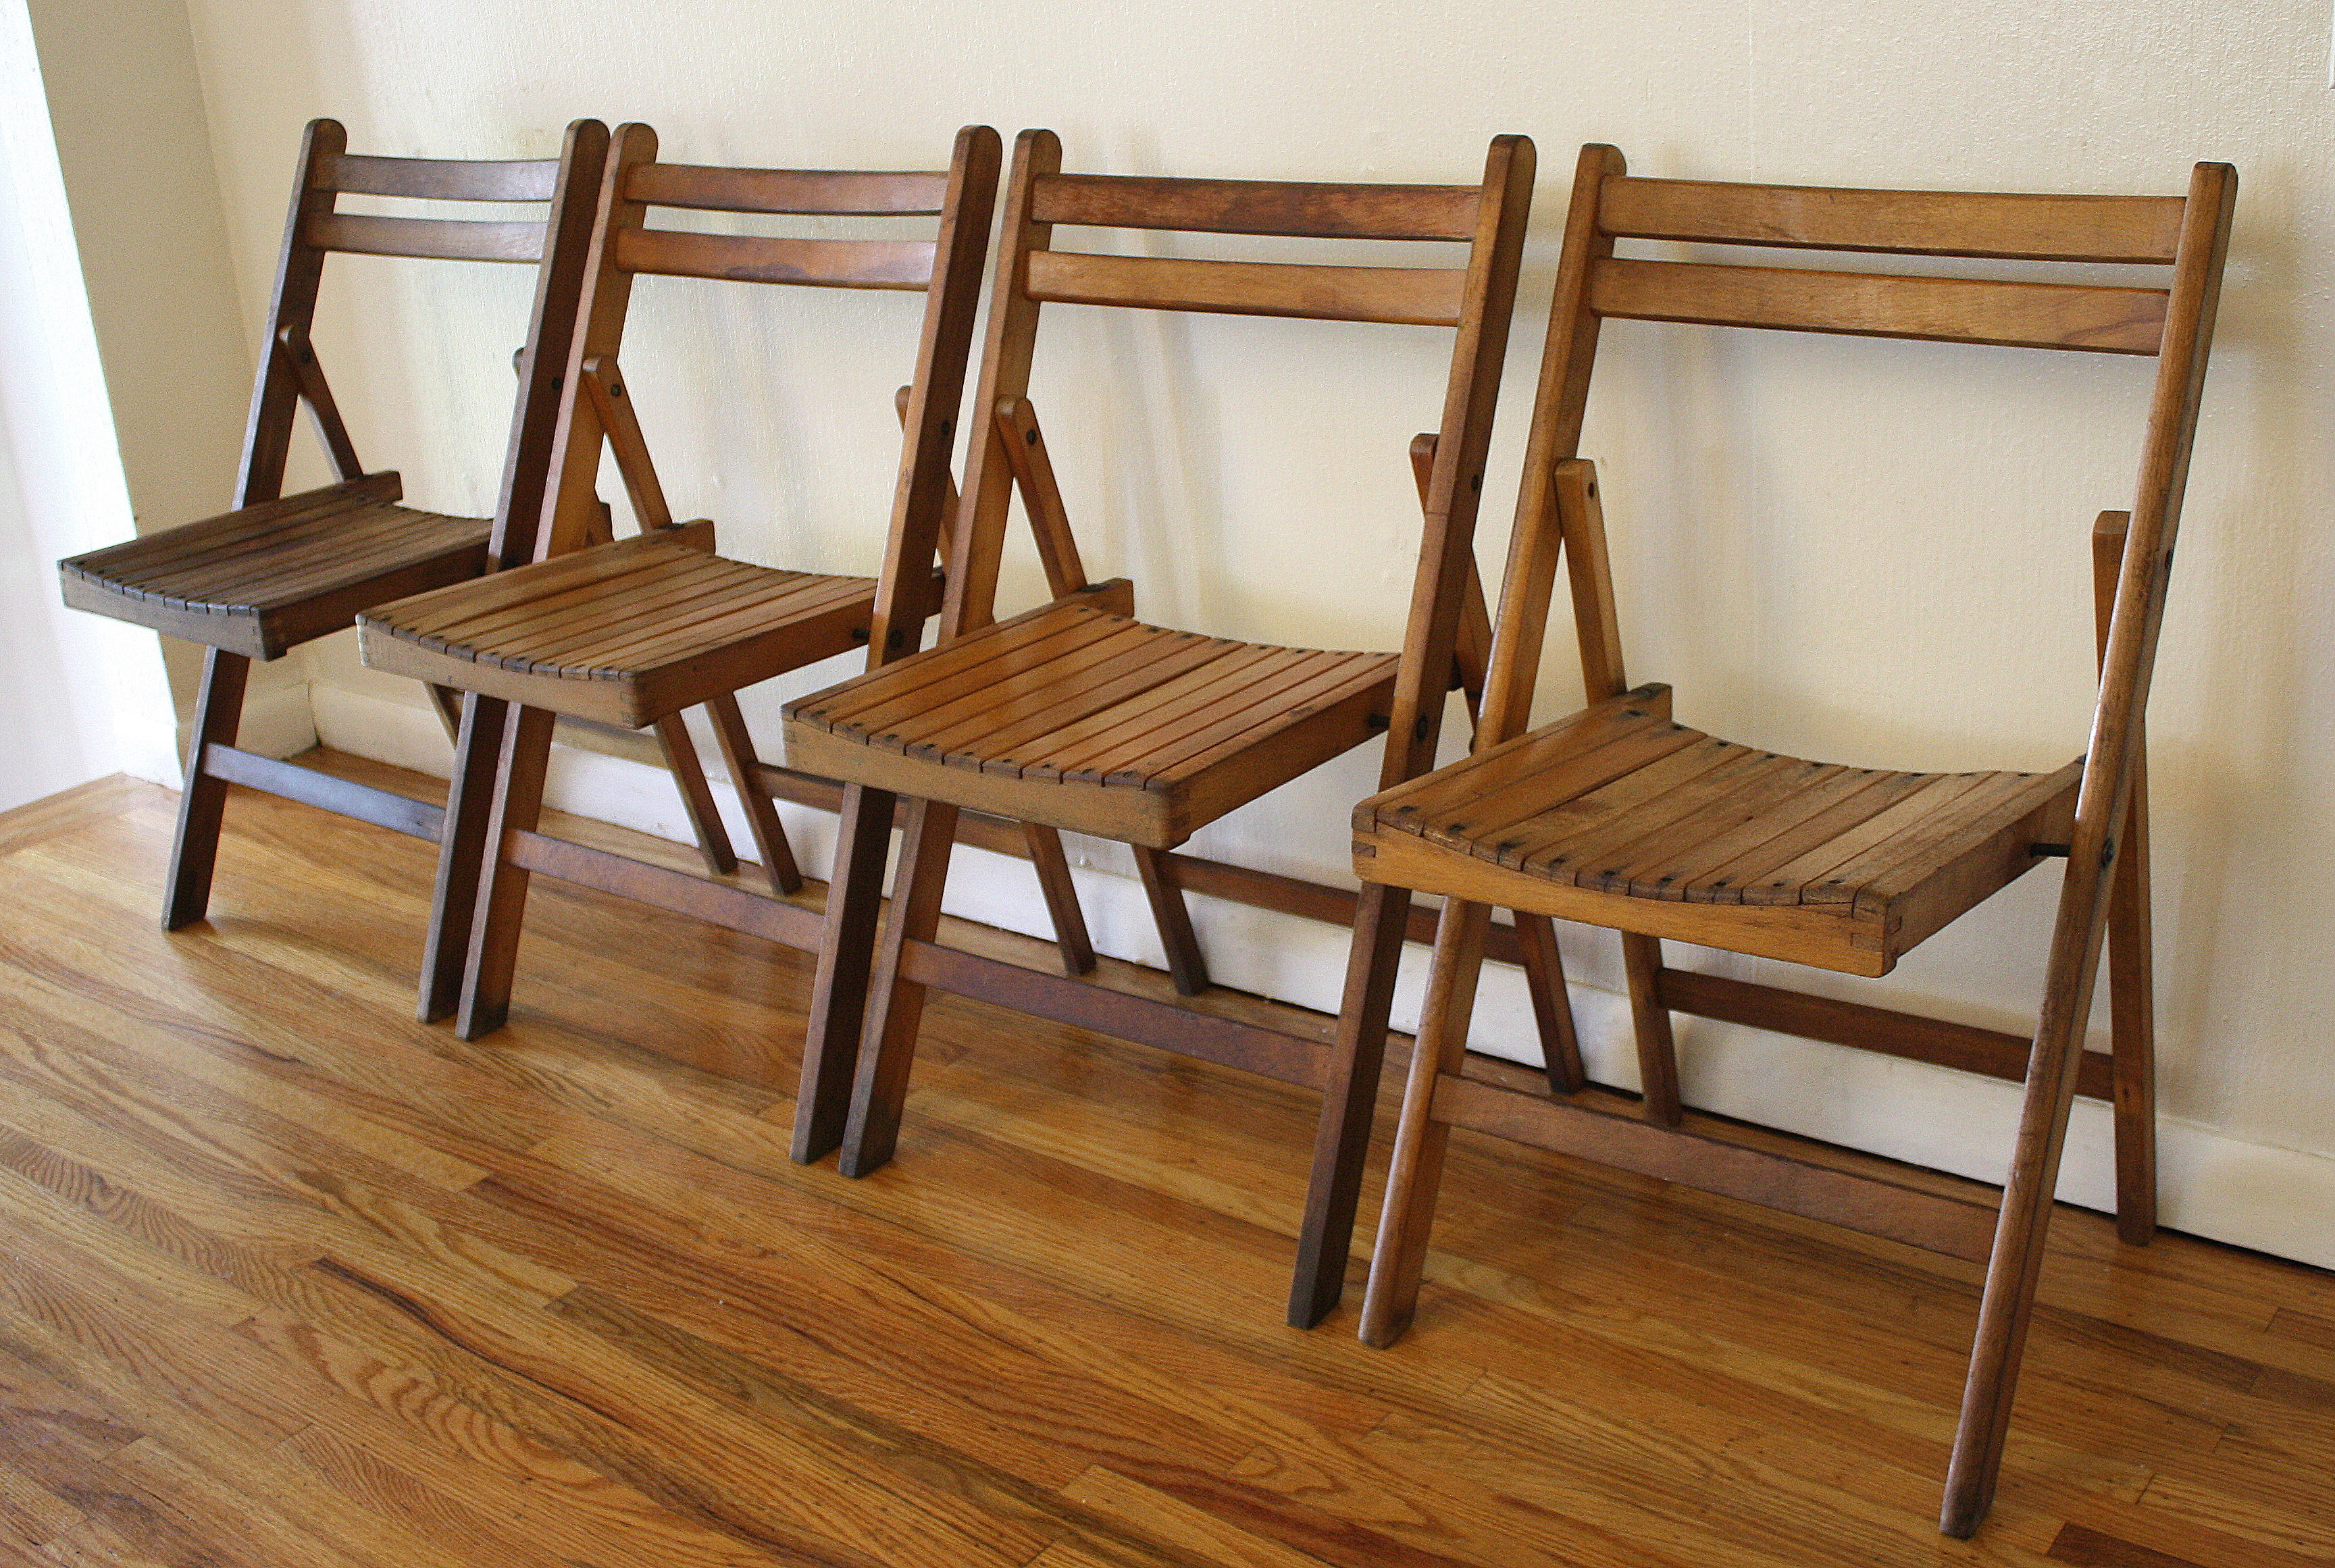 Antique Folding Chairs 1 Picked Vintage